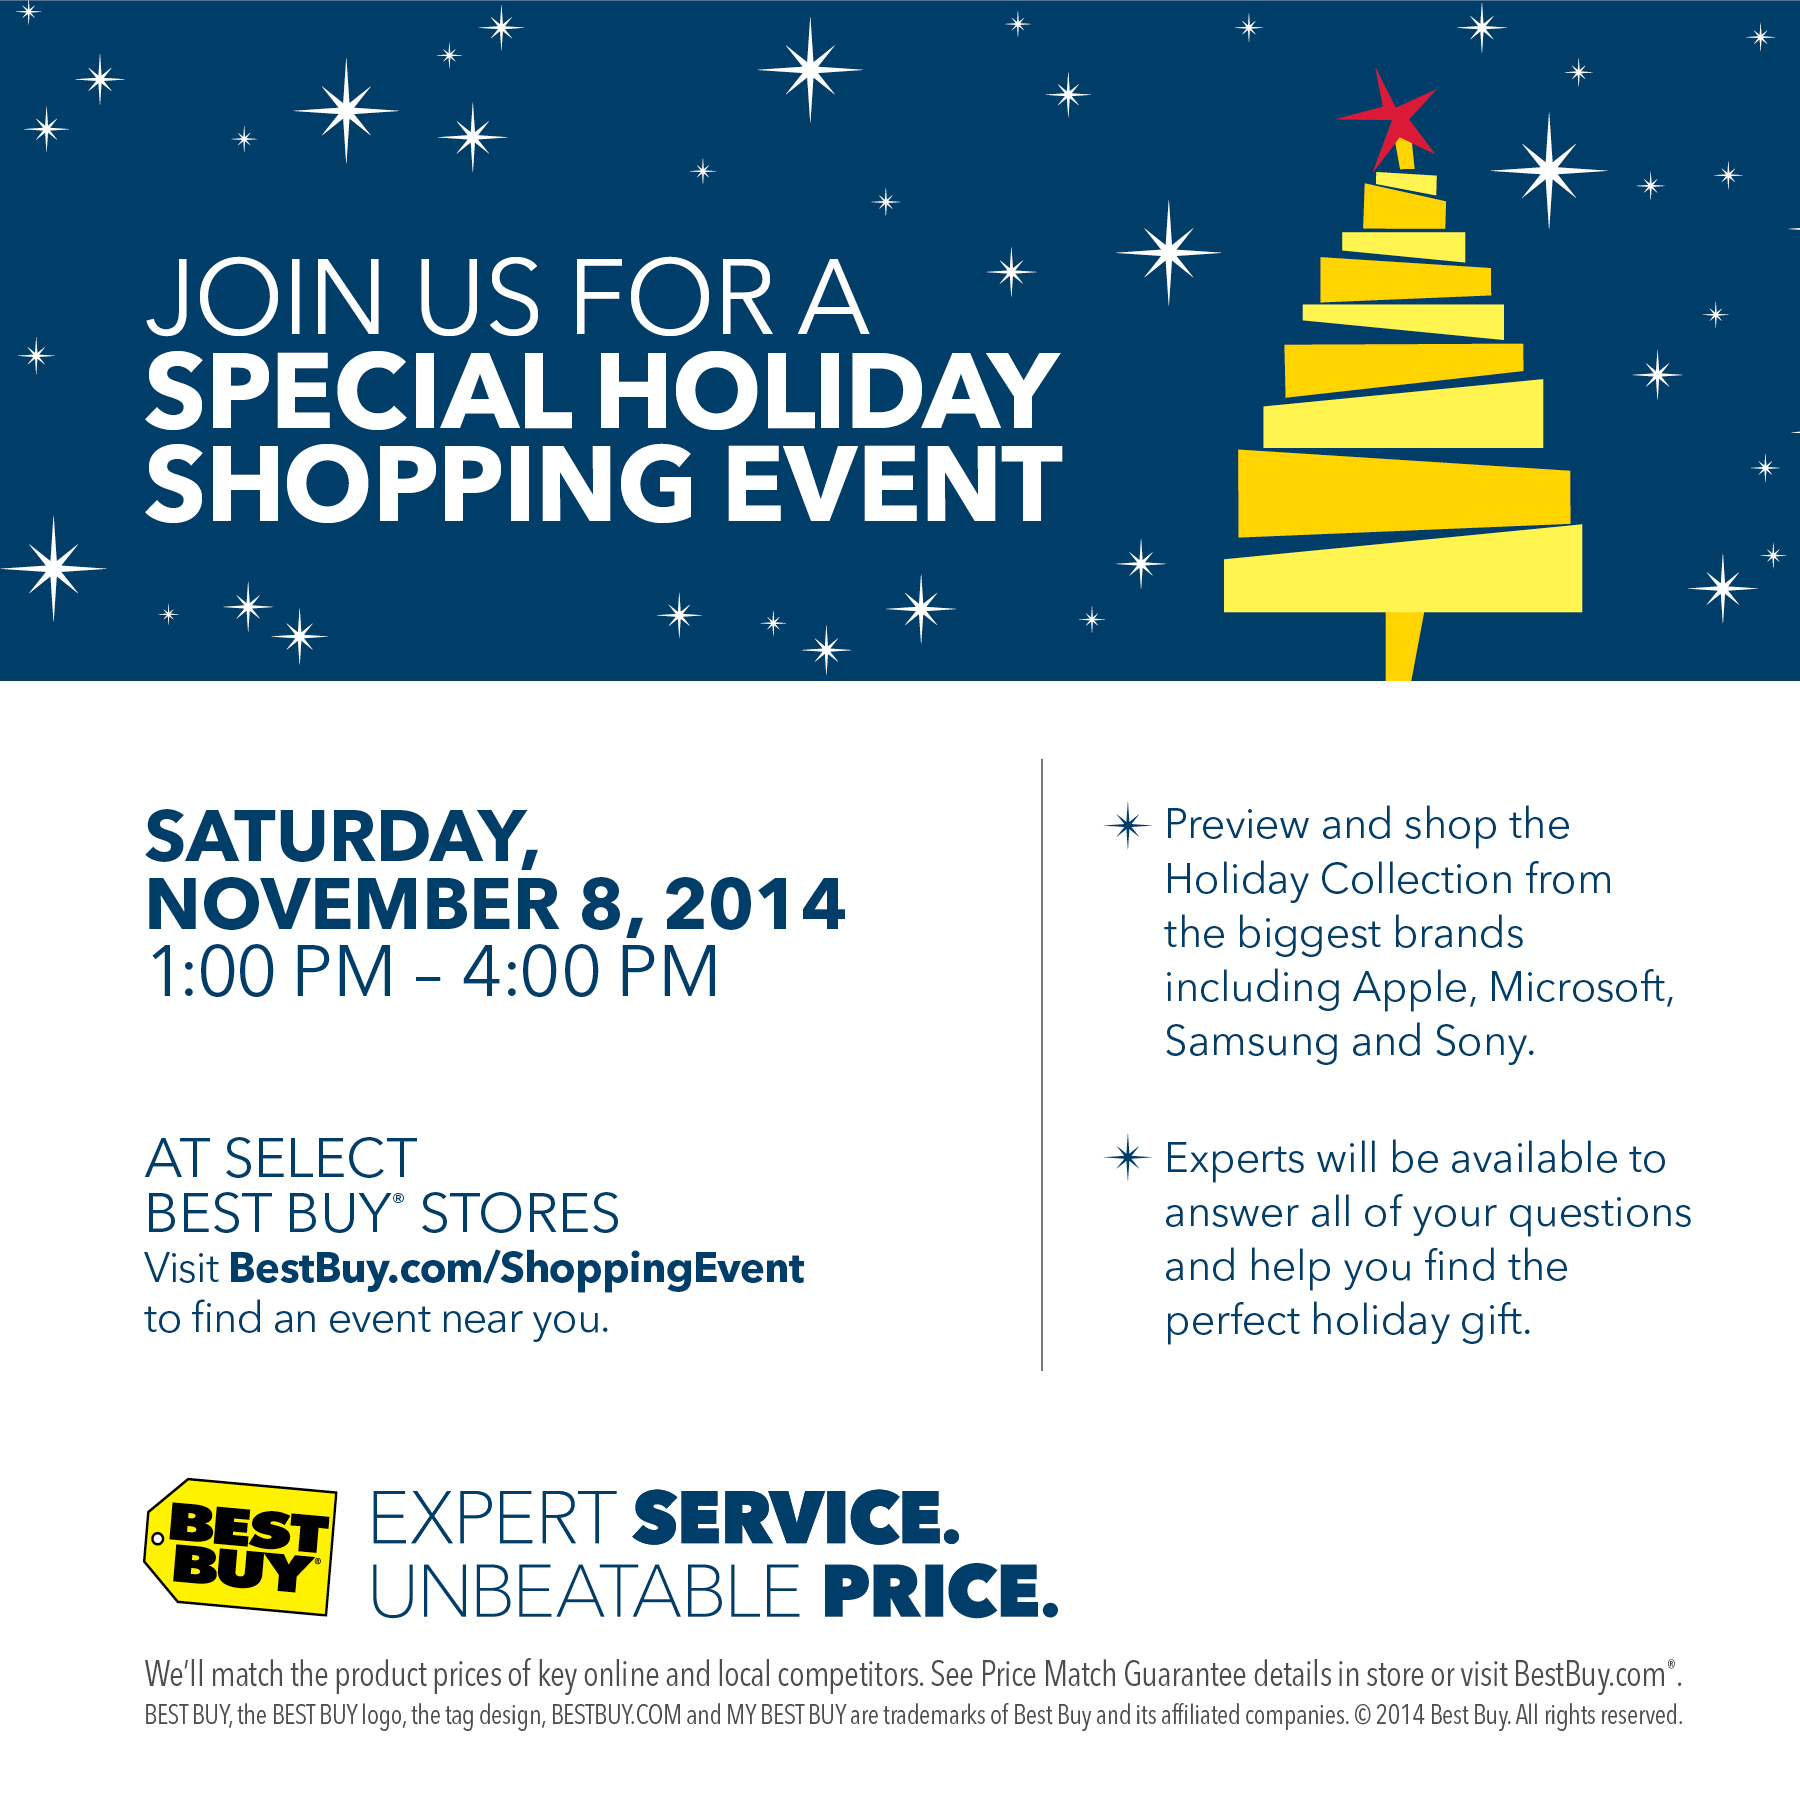 Best Buy Holiday Shopping Event – November 8th